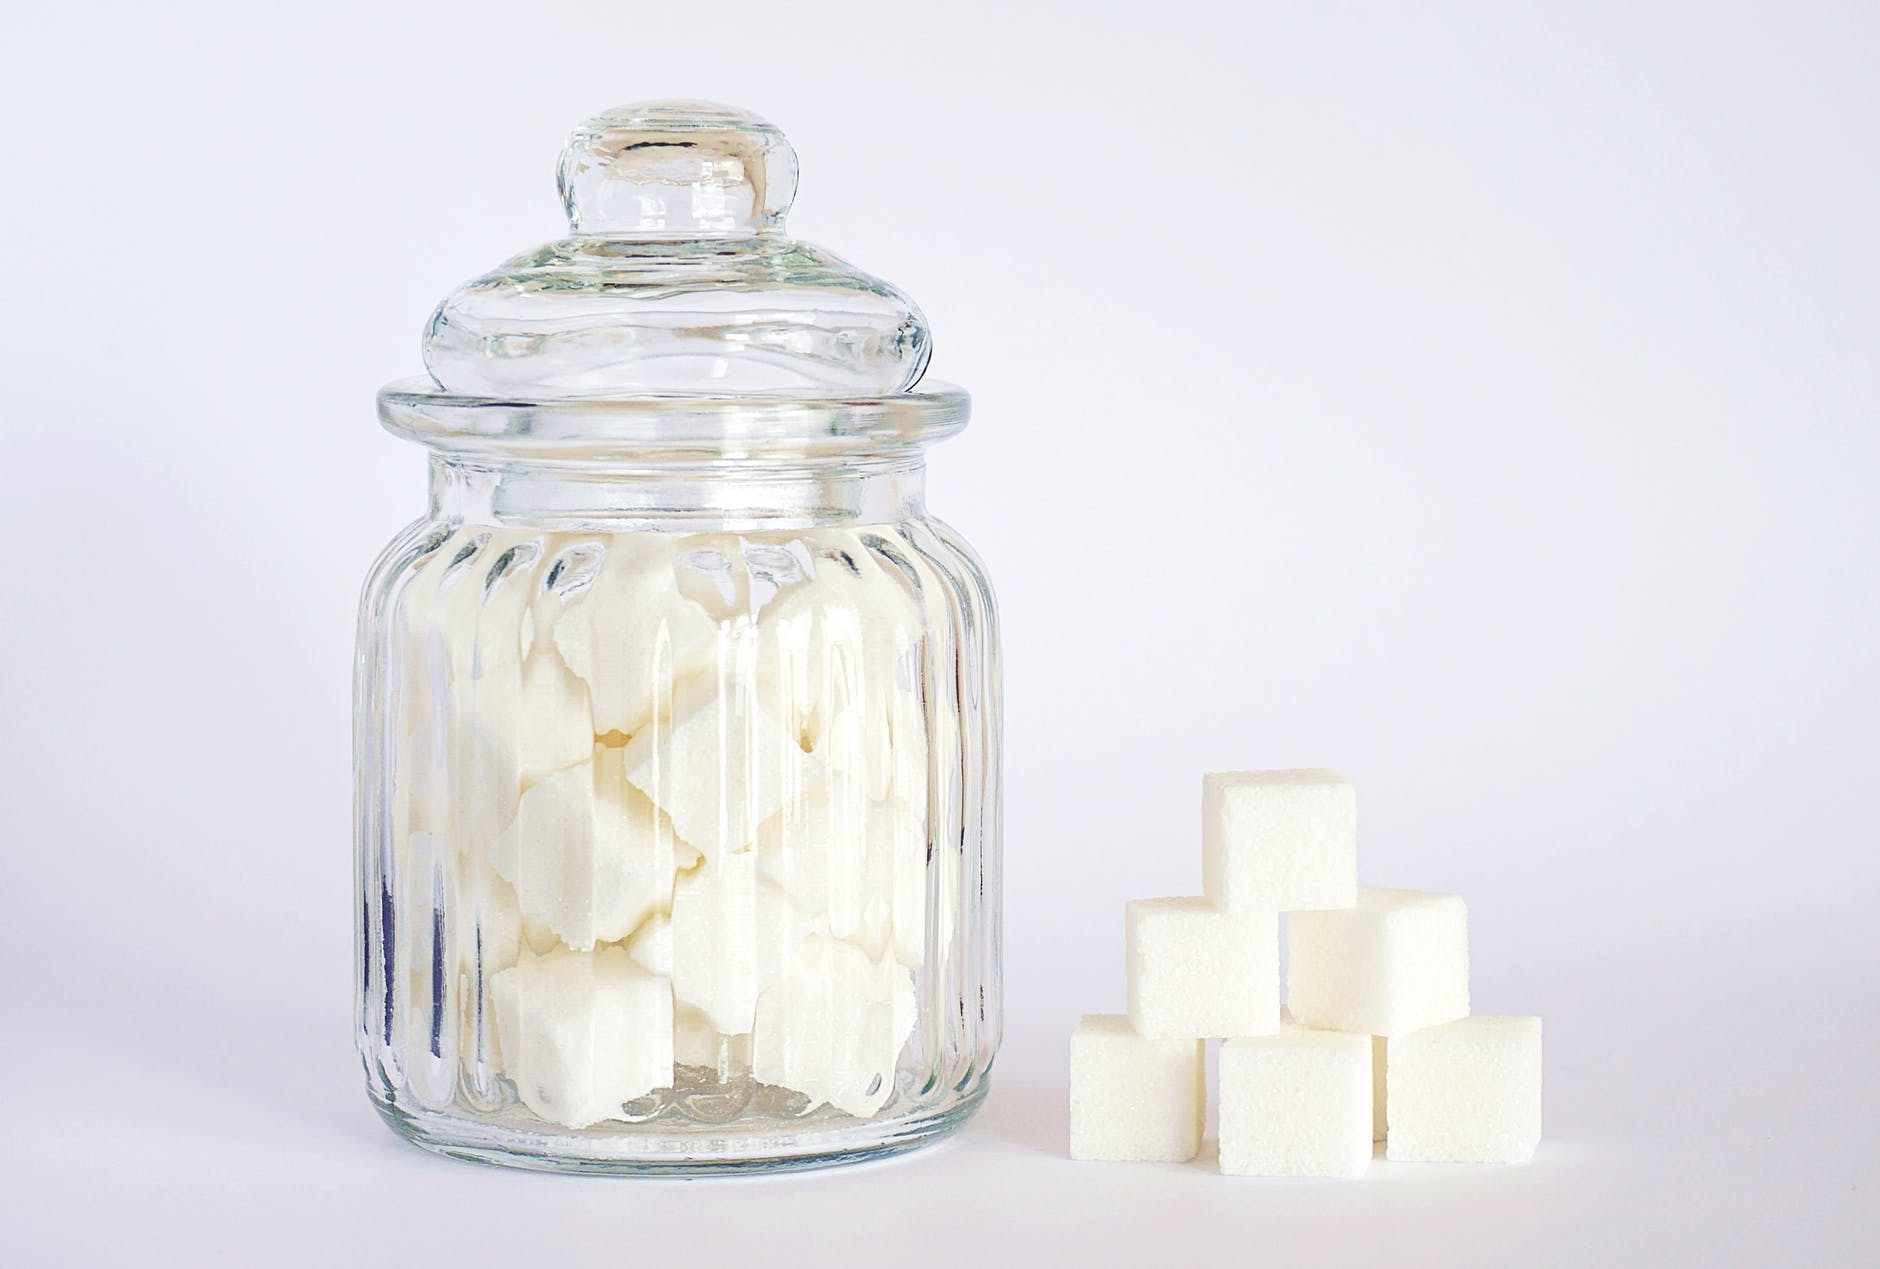 a jar of sugar cubes